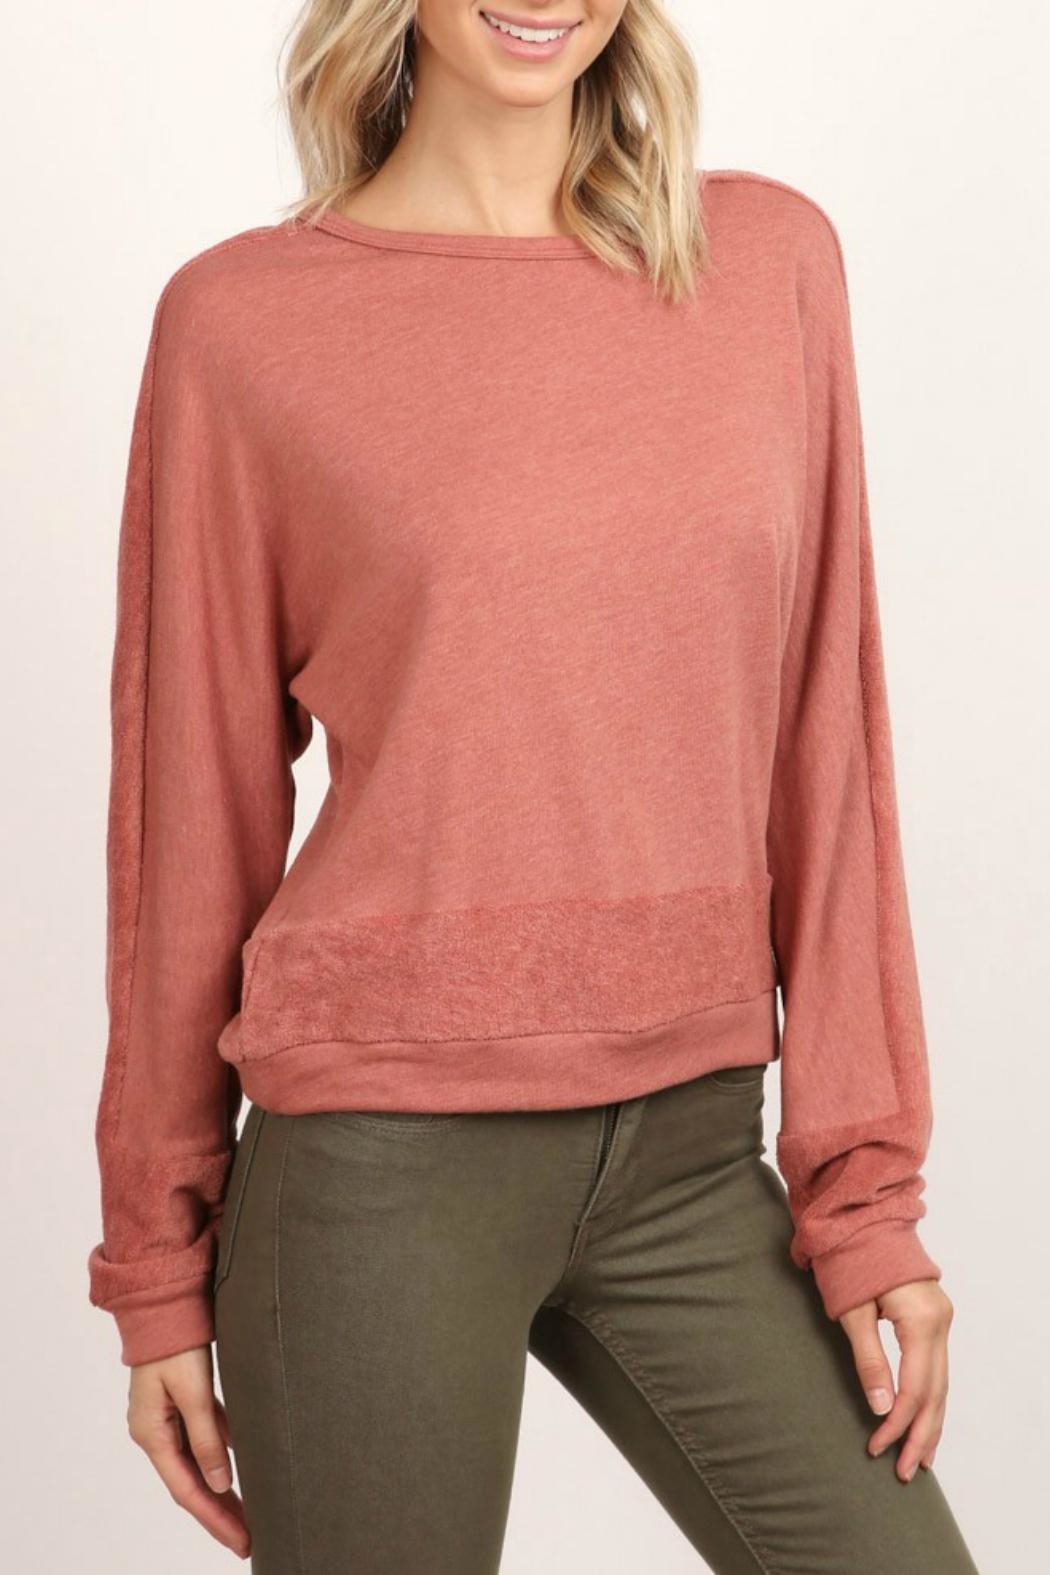 hummingbird Long-Sleeve Pullover Sweatshirt - Main Image